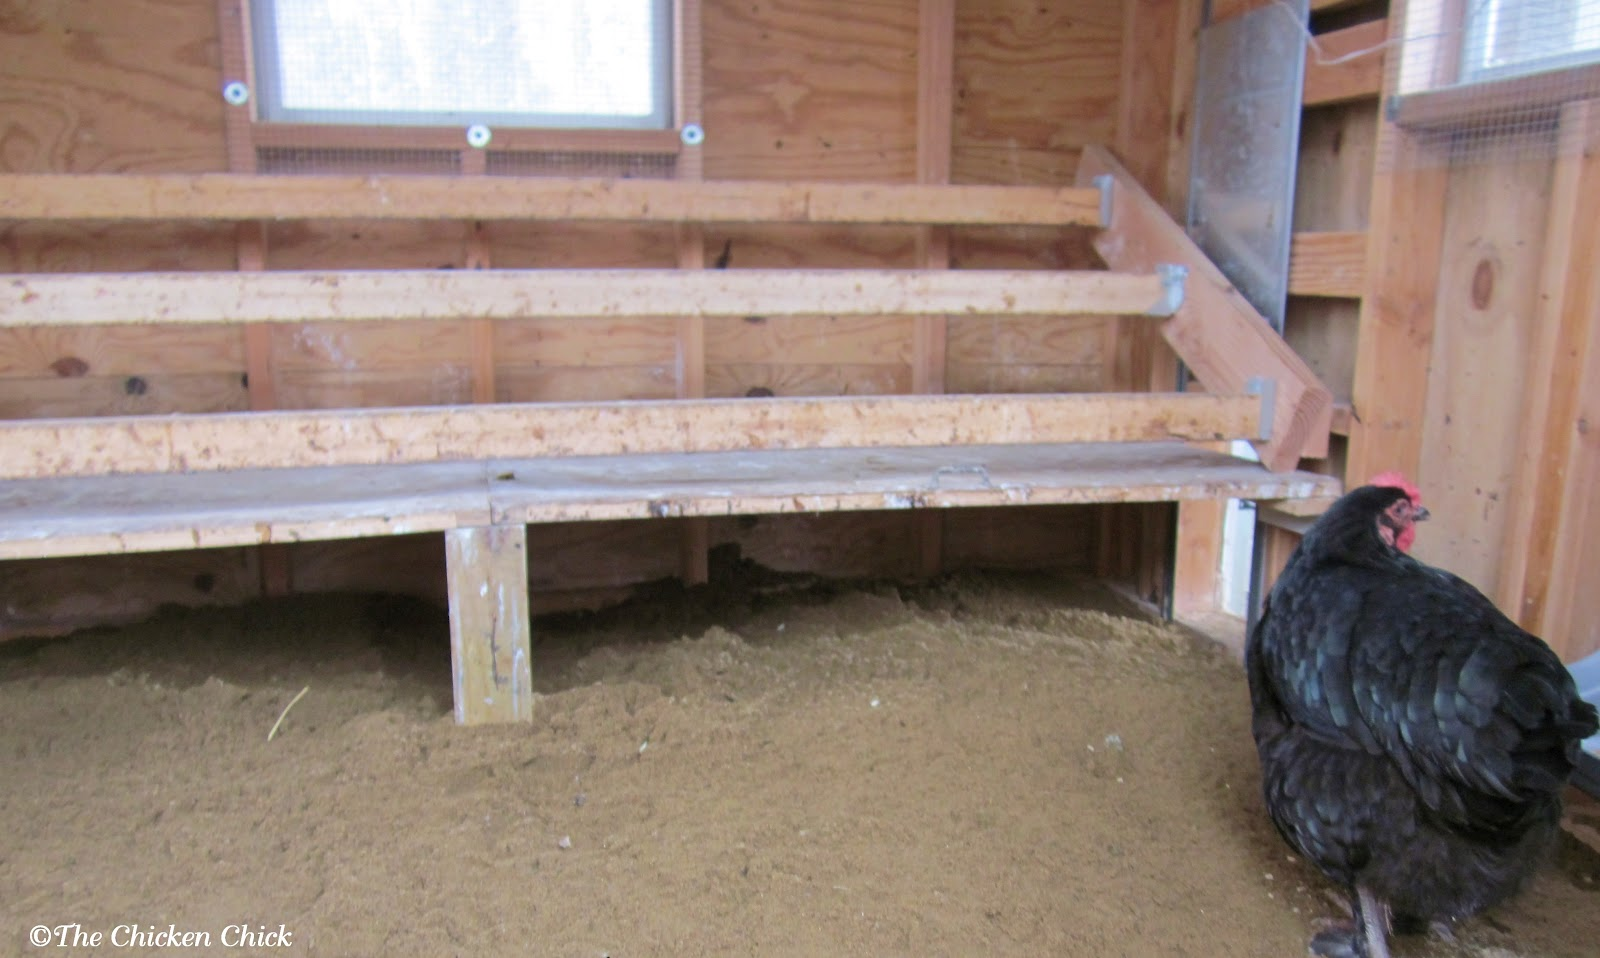 Inside Chicken House the chicken chick®: 5 tips for a cleaner coop with less effort